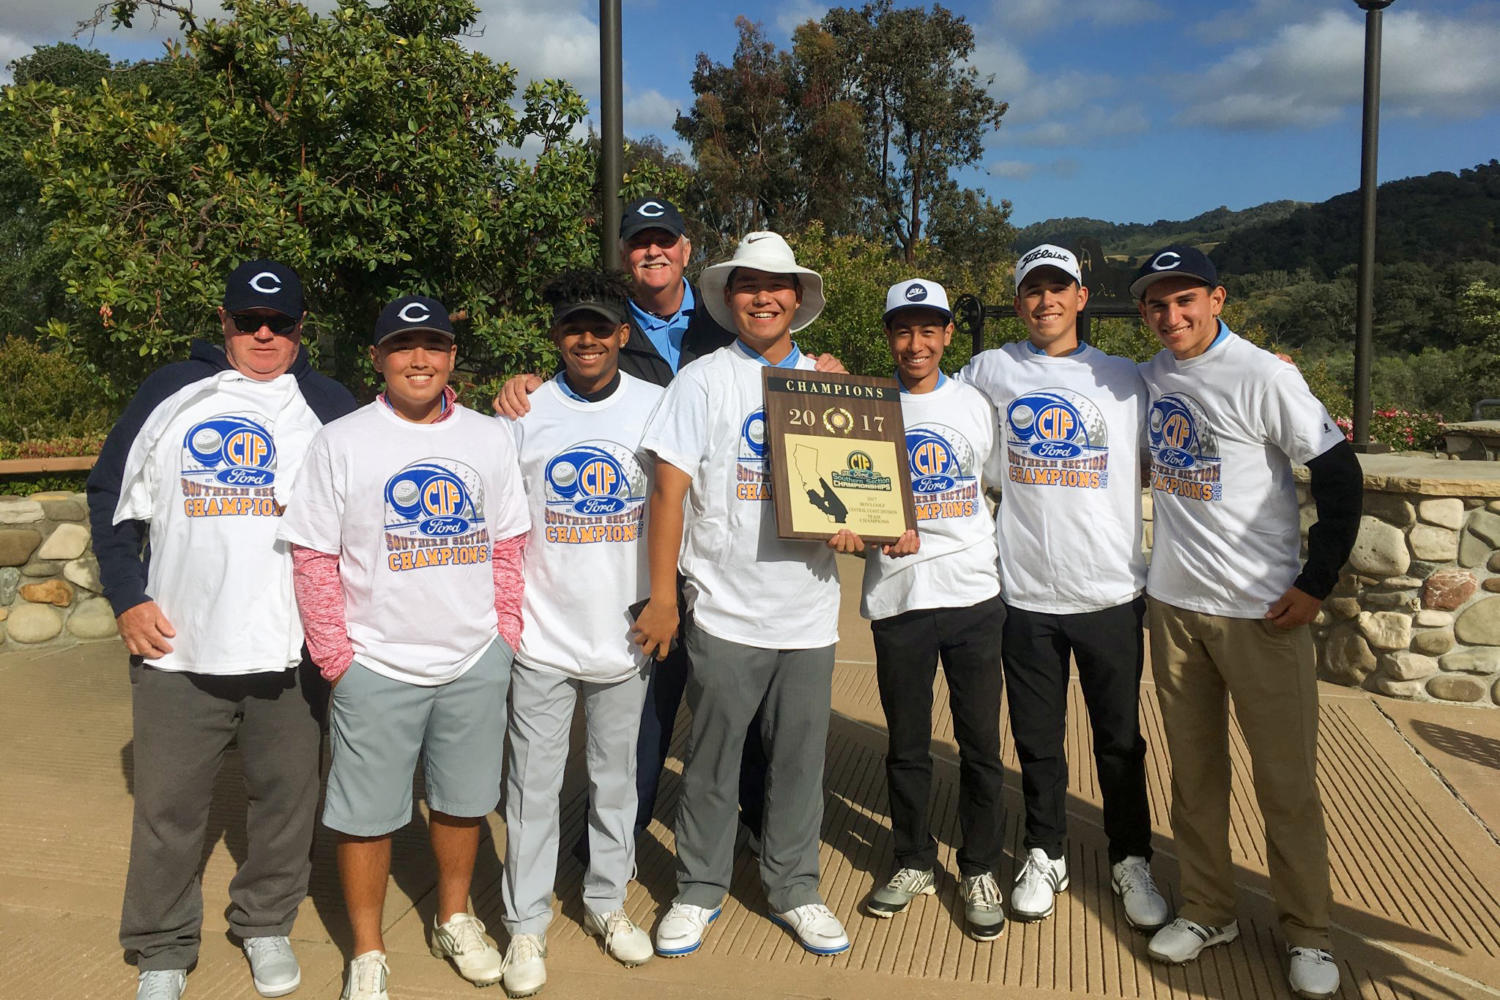 Cam High's boy's golf team takes the CIF Championship in Solvang.